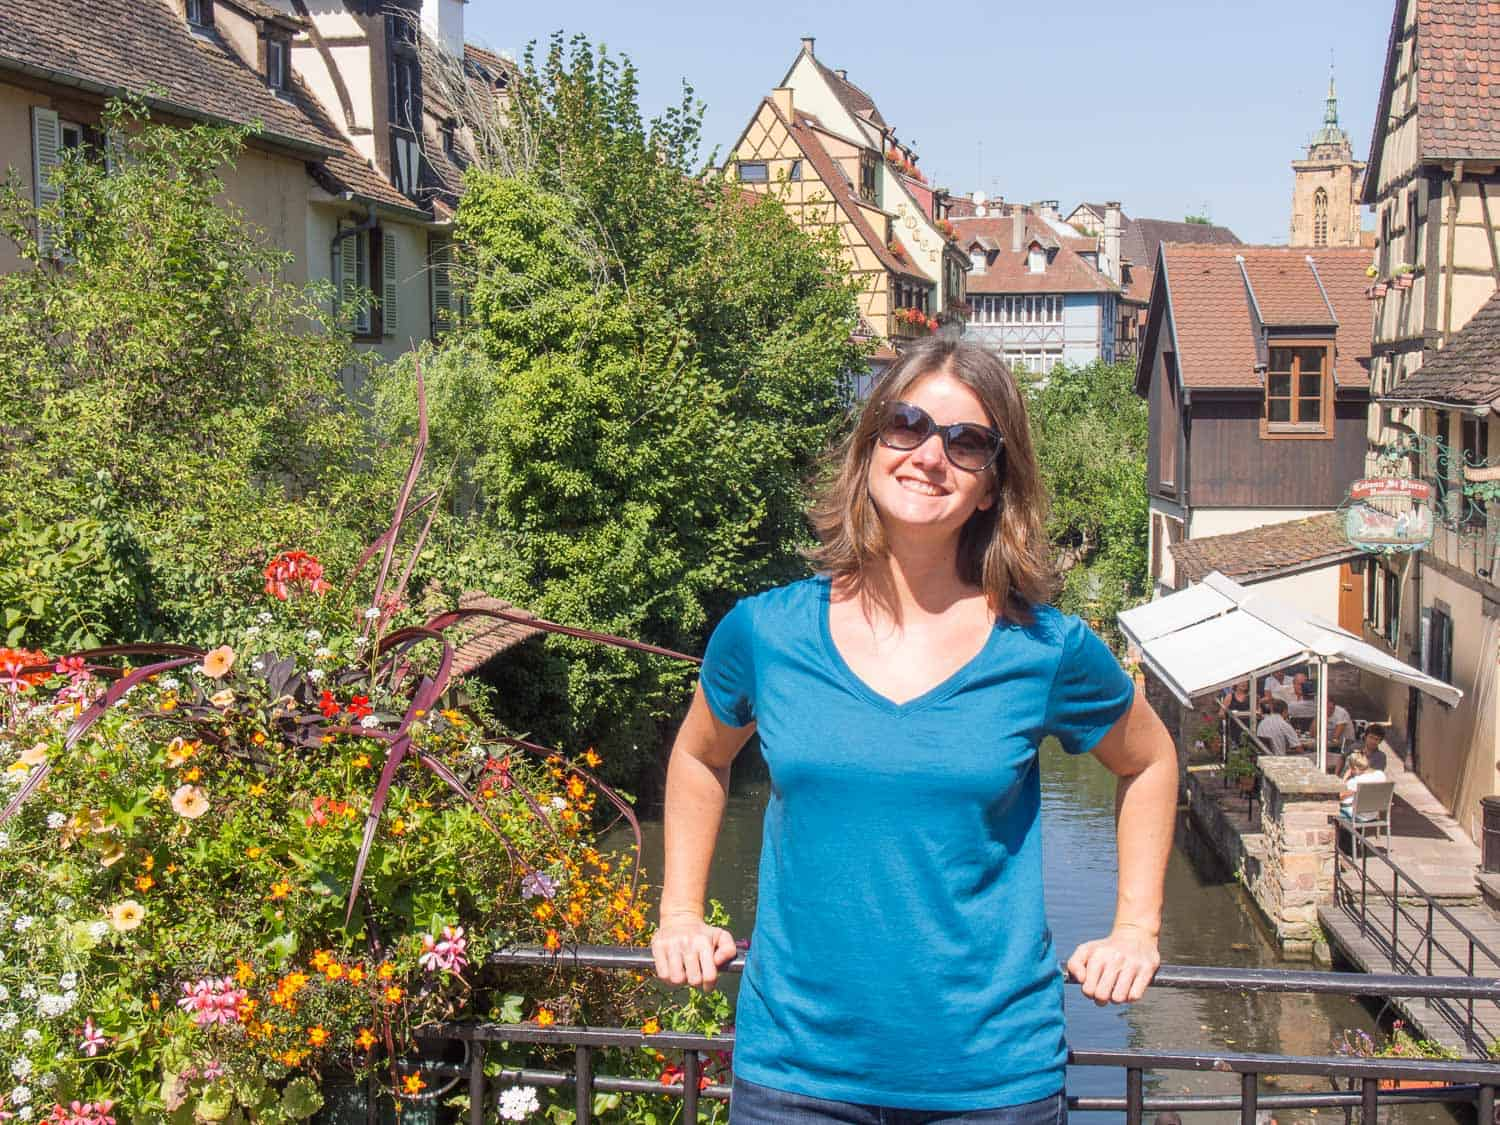 Ably t-shirt review: how do these odour-resistant t-shirts stand up to a month of travel in Europe